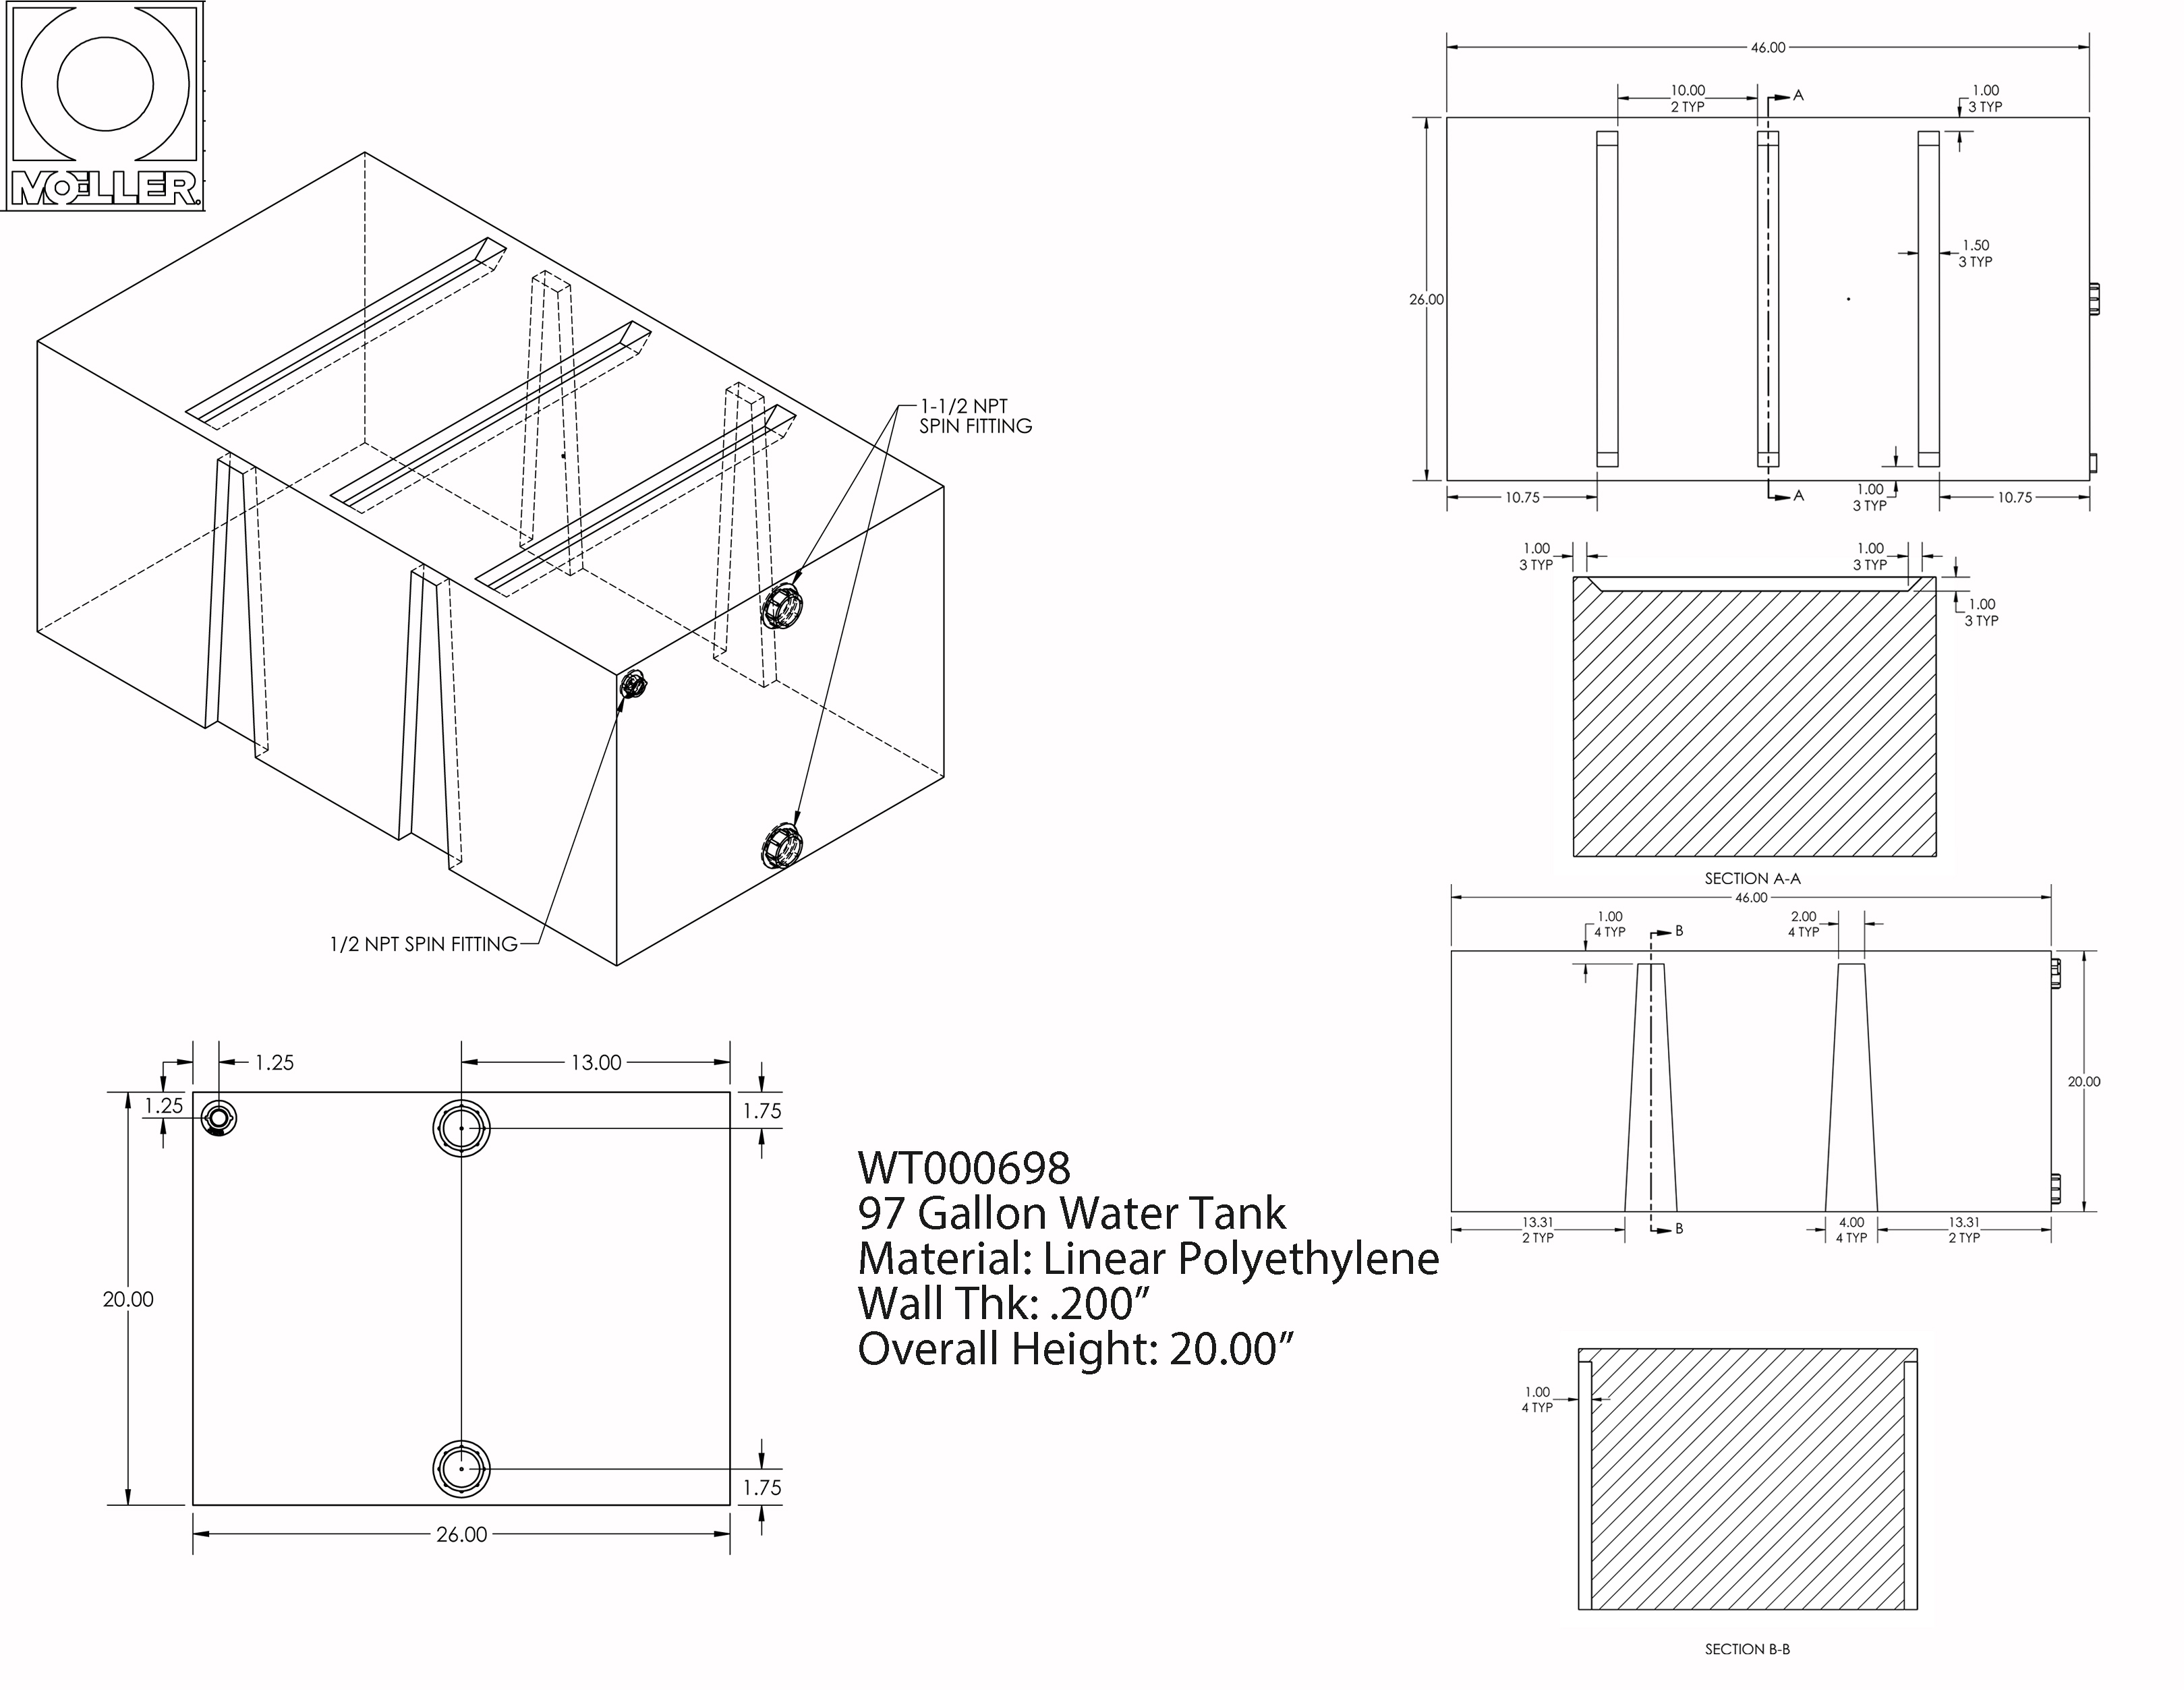 97 Gallon Rectangular Shaped Waste/Water Tank, 46″x26″x20″, WT000698